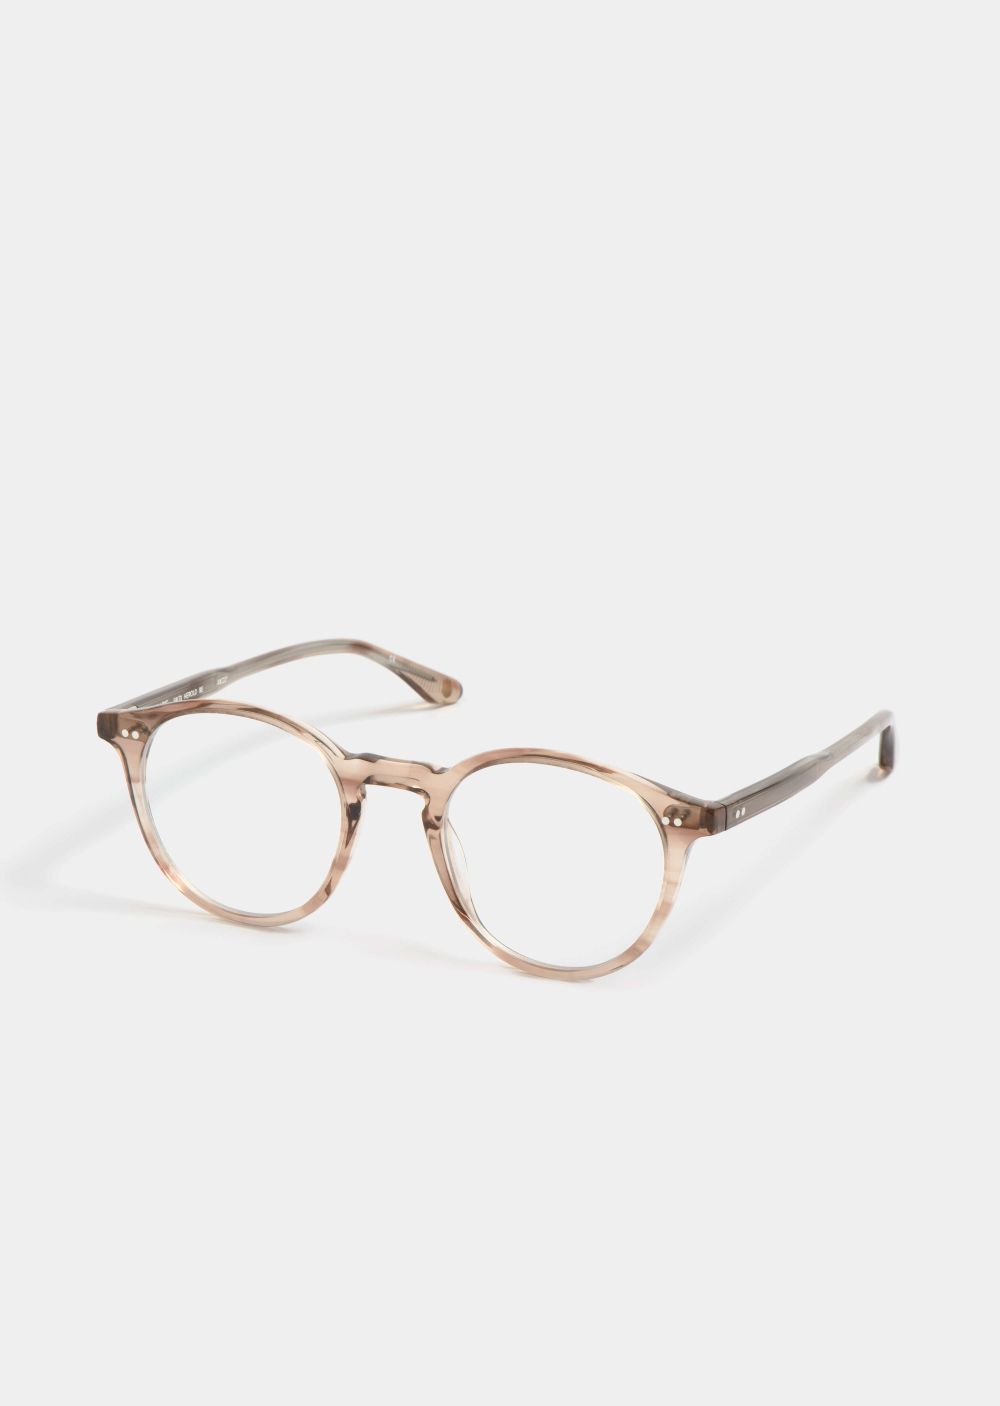 PETER AND MAY -  - LT3 Herold RX beige